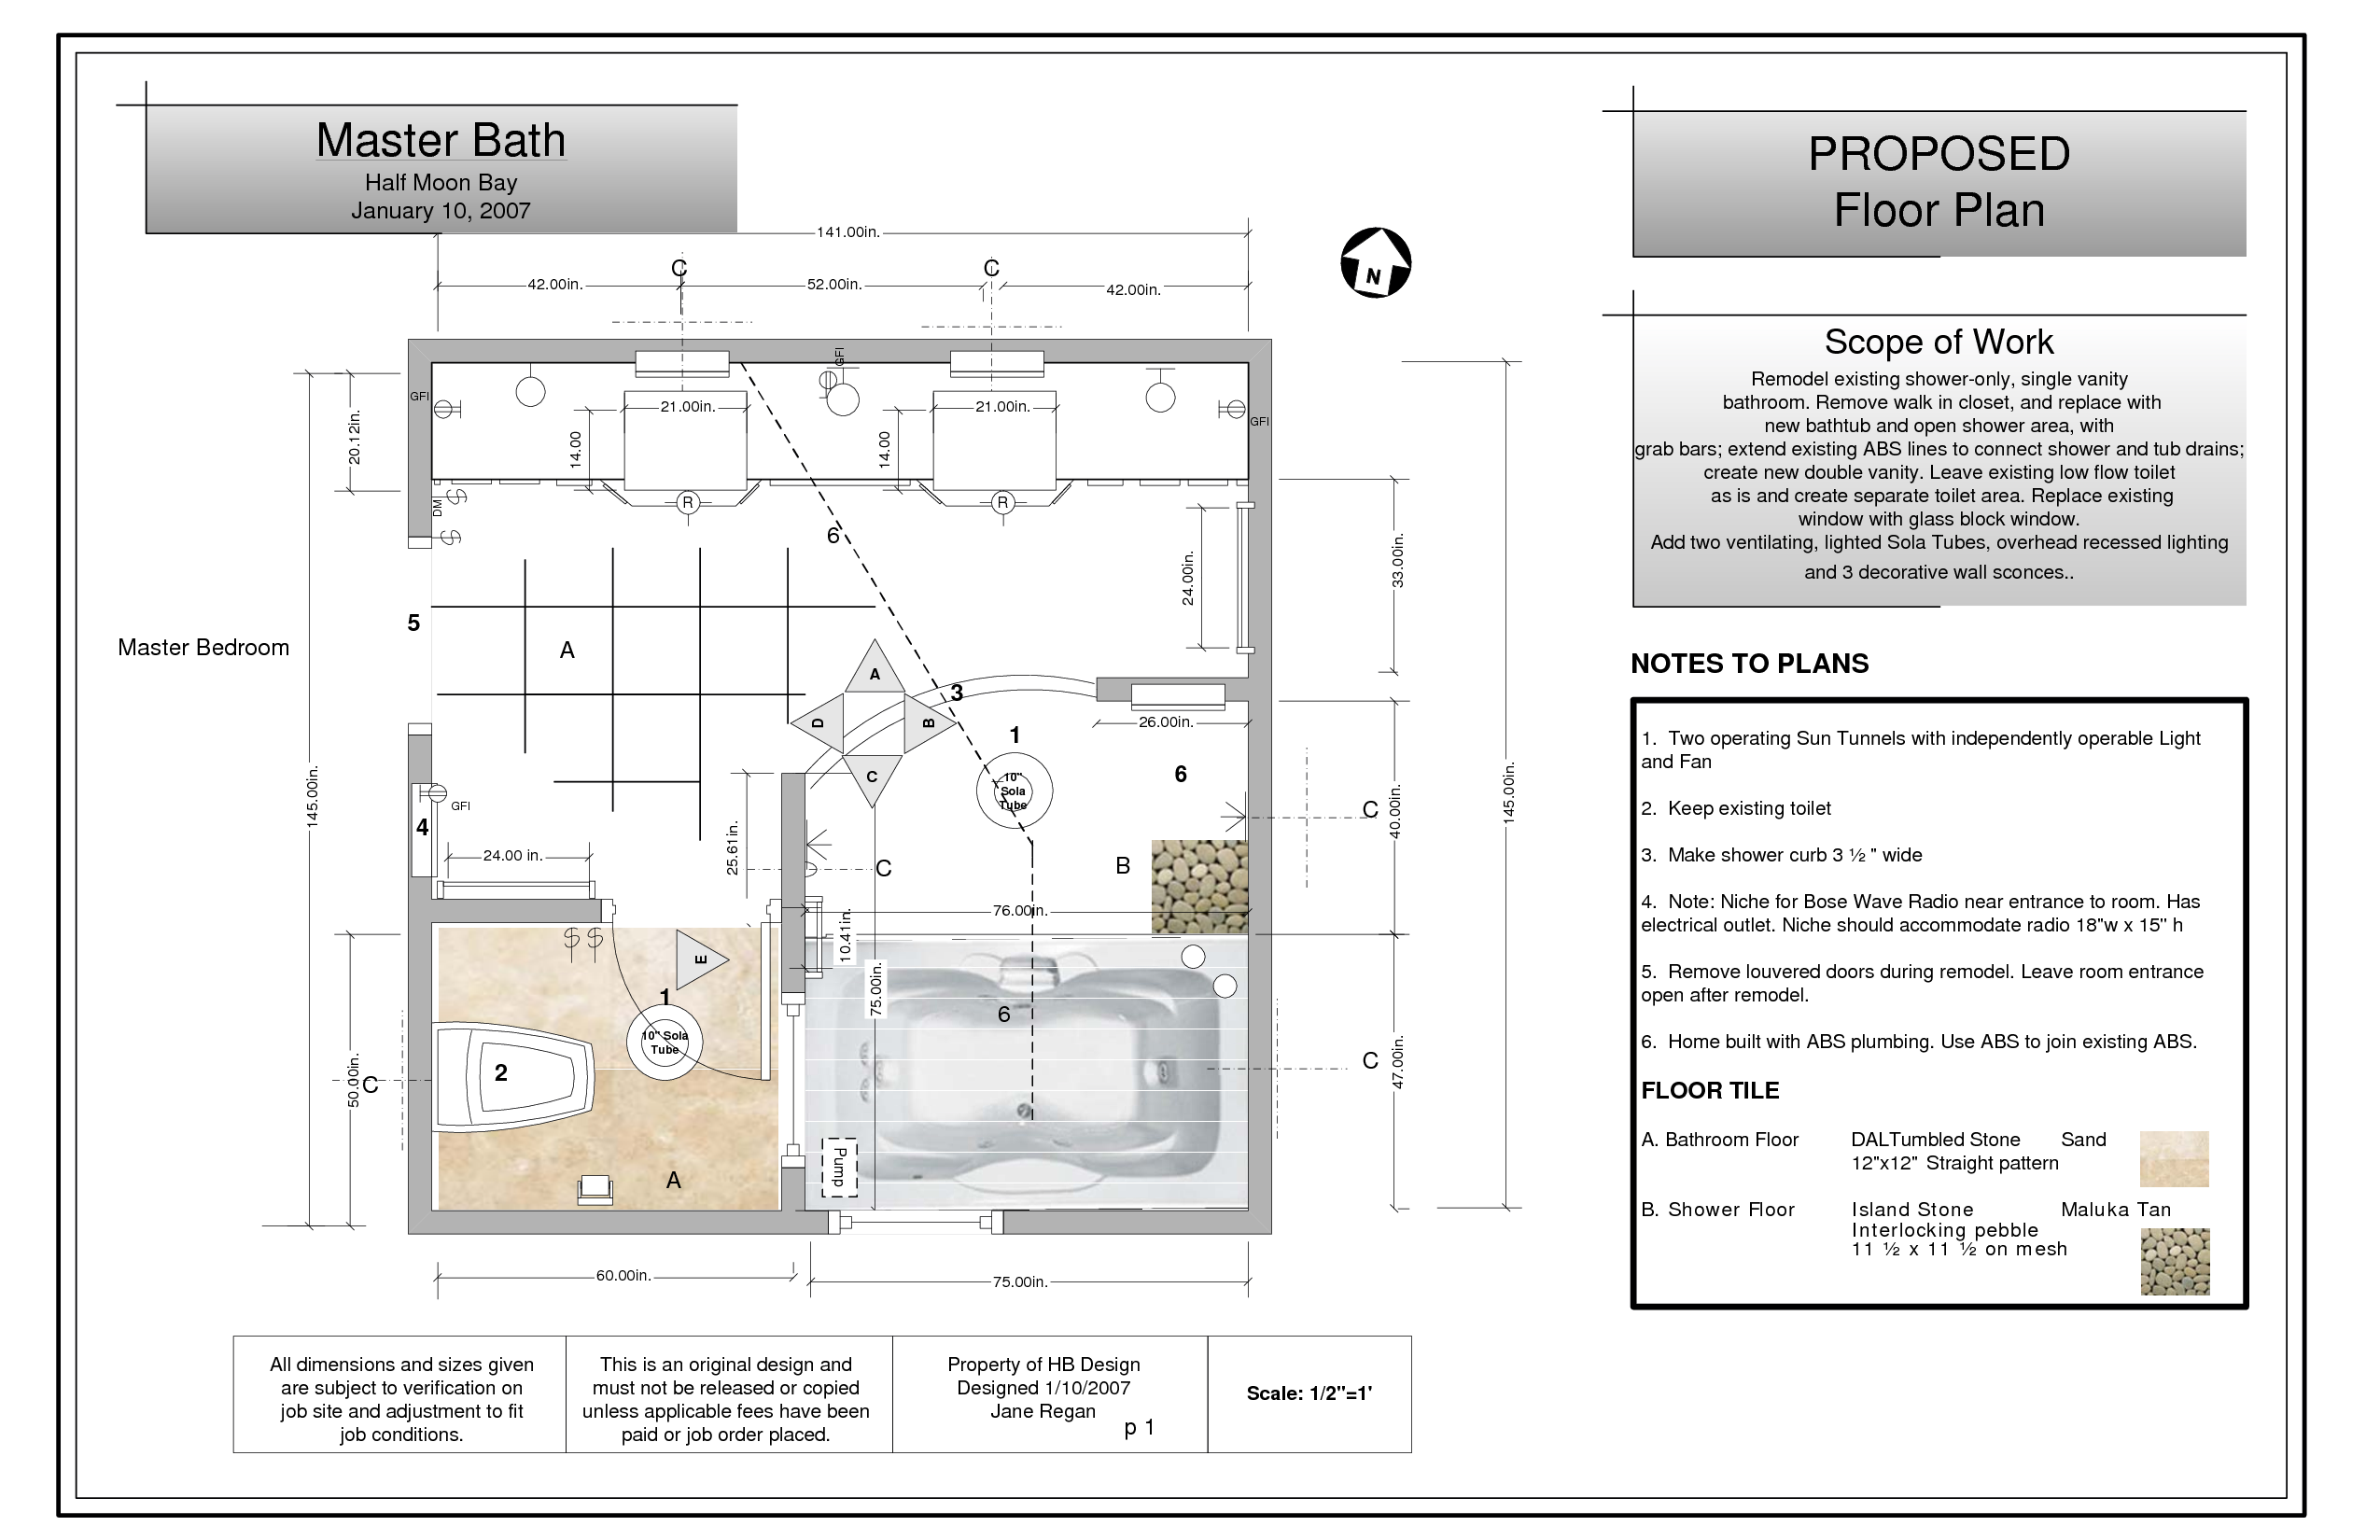 Master Bathroom Floor Plans With Walk In Shower Inspiration Decor 12141 Design Ideas Luphly Co Small Bathroom Floor Plans Bathroom Floor Plans Bathroom Plans